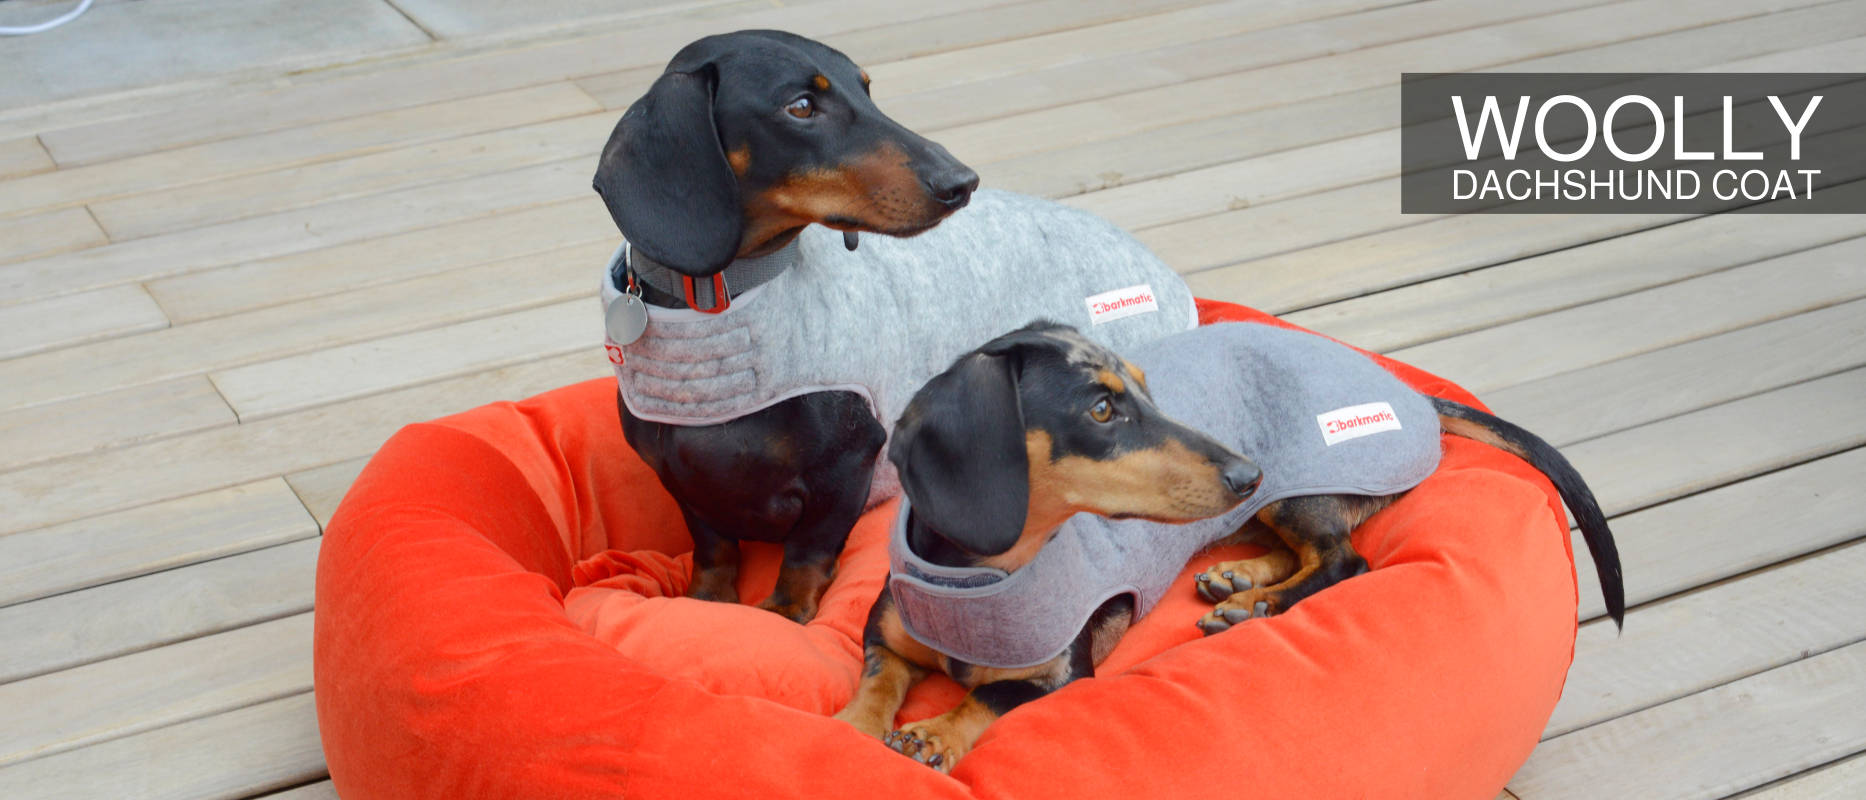 Barkmatic dachshund wolly coat